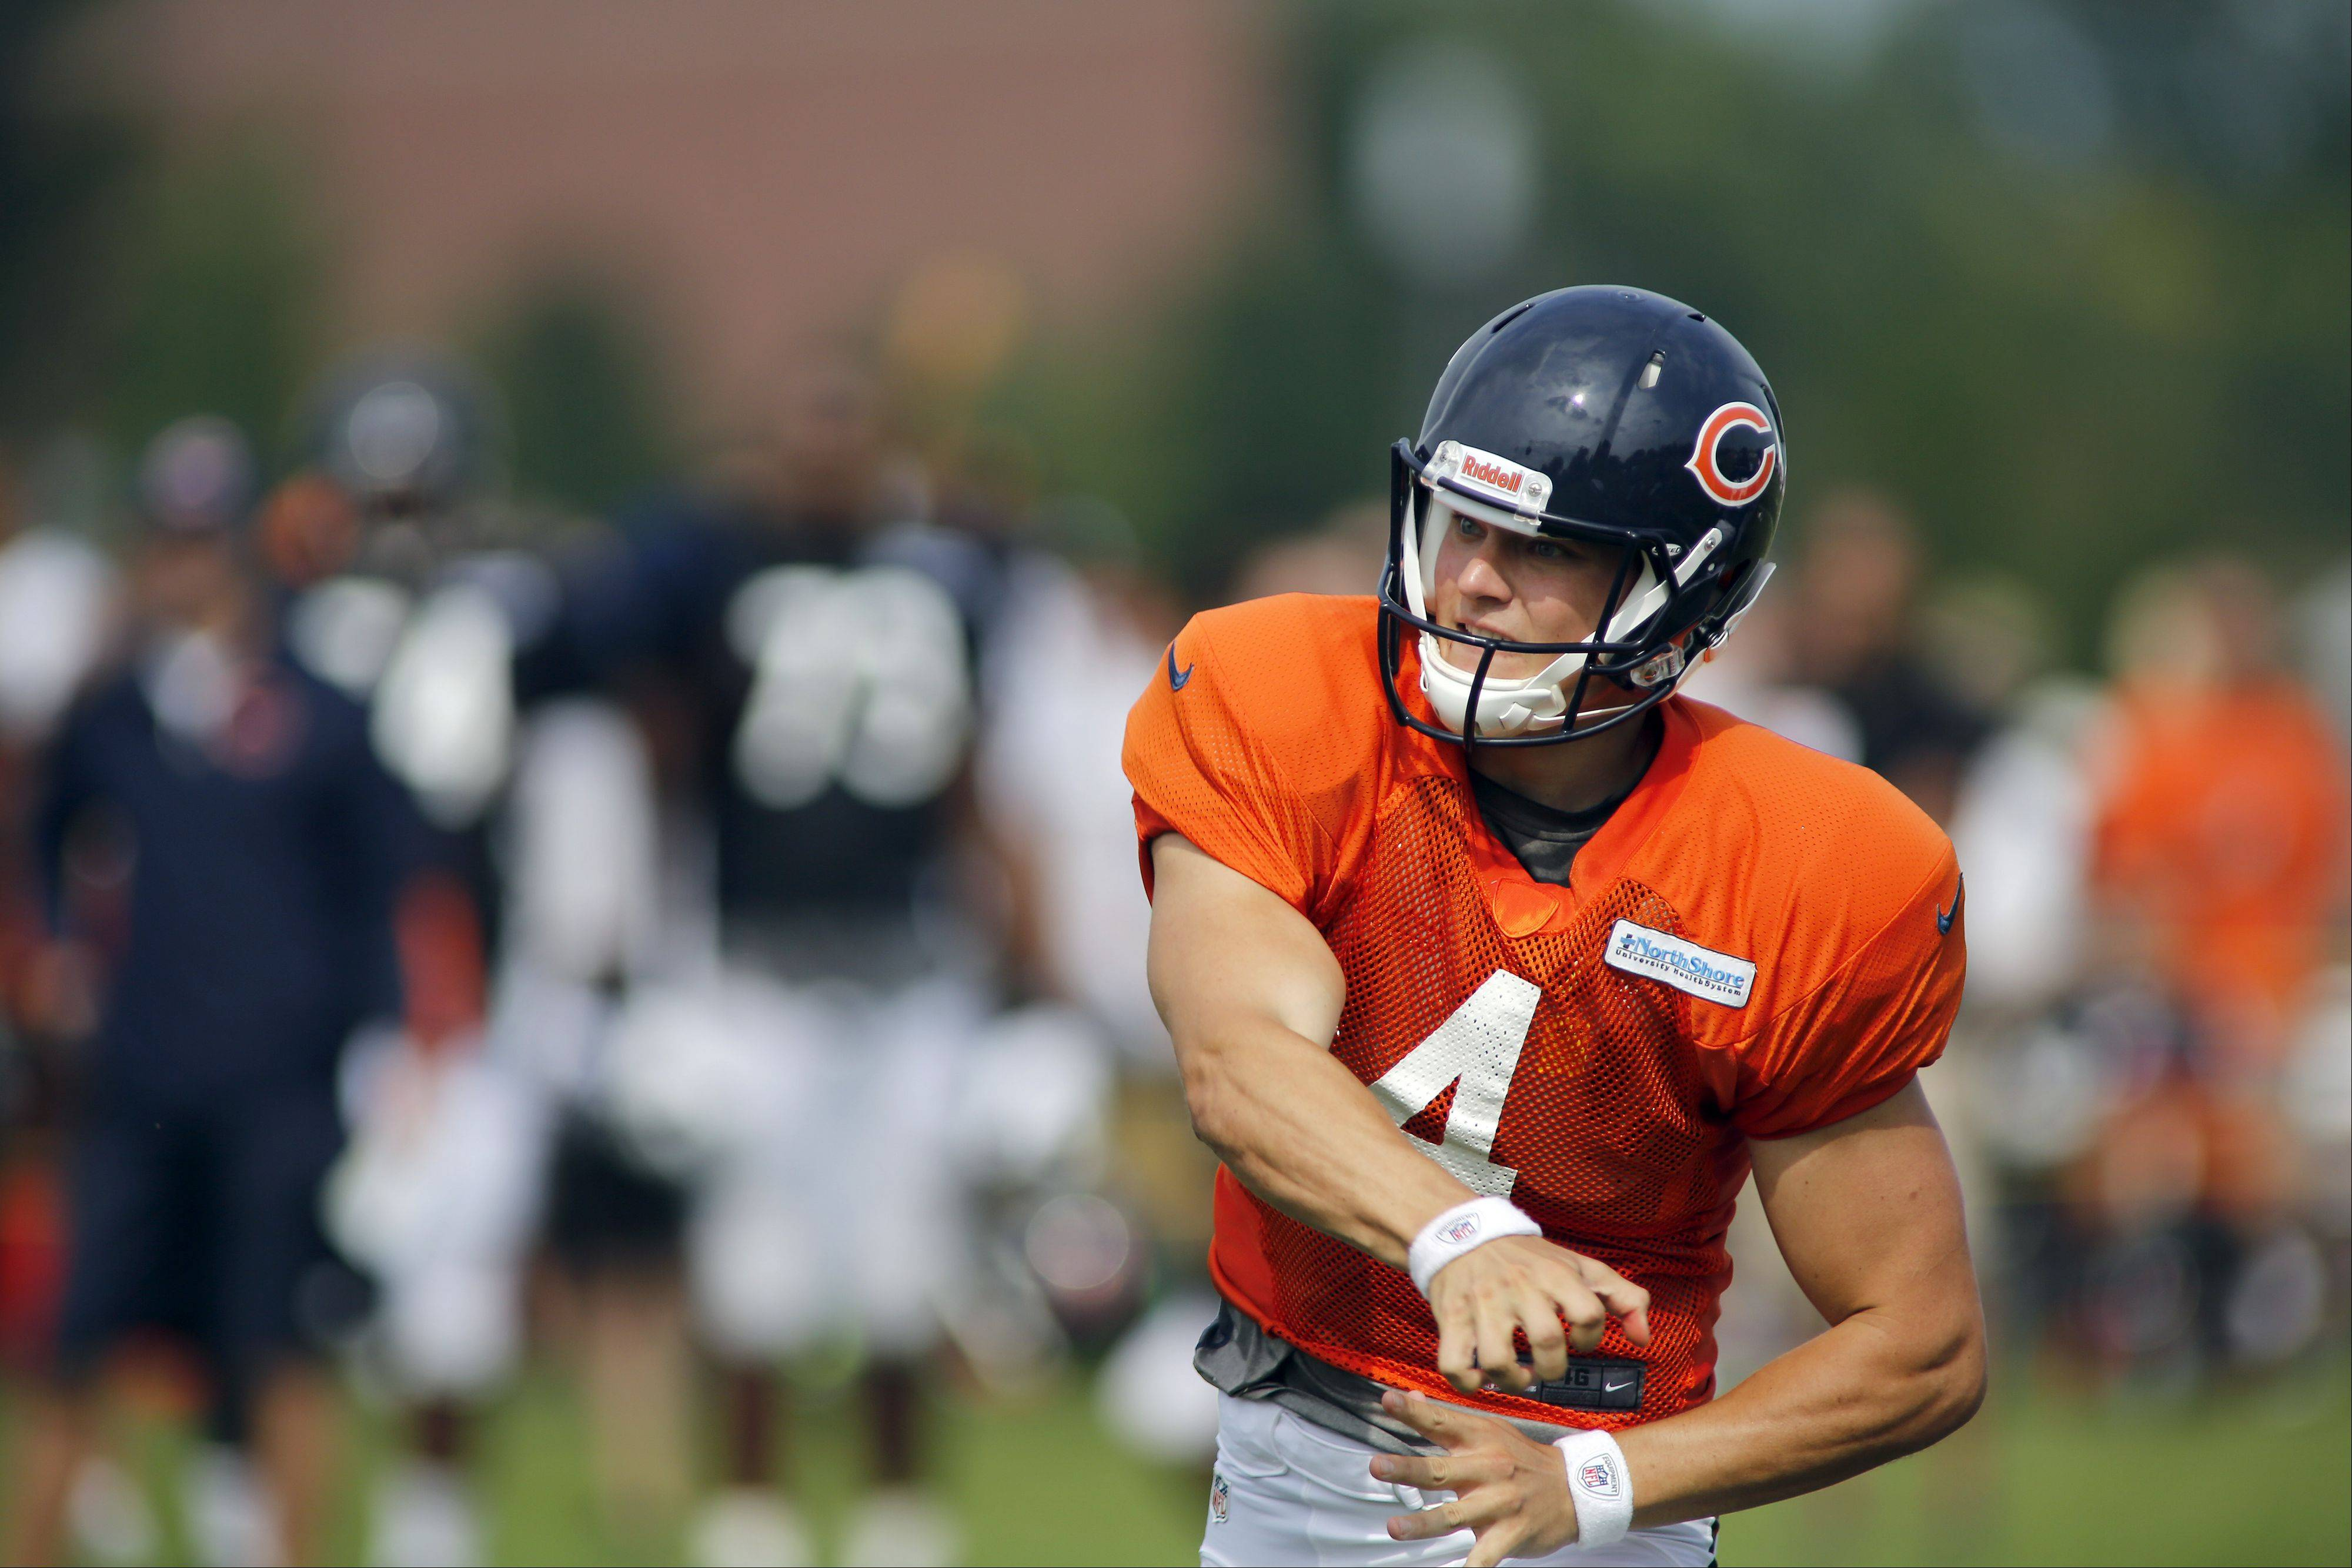 TheChicago Bears and quarterback Matt Blanchard reached an injury settlement, allowing the team to reach its 75-man roster cut on Tuesday. Blanchard, a former Lake Zurich High School star, is free to sign with another team.